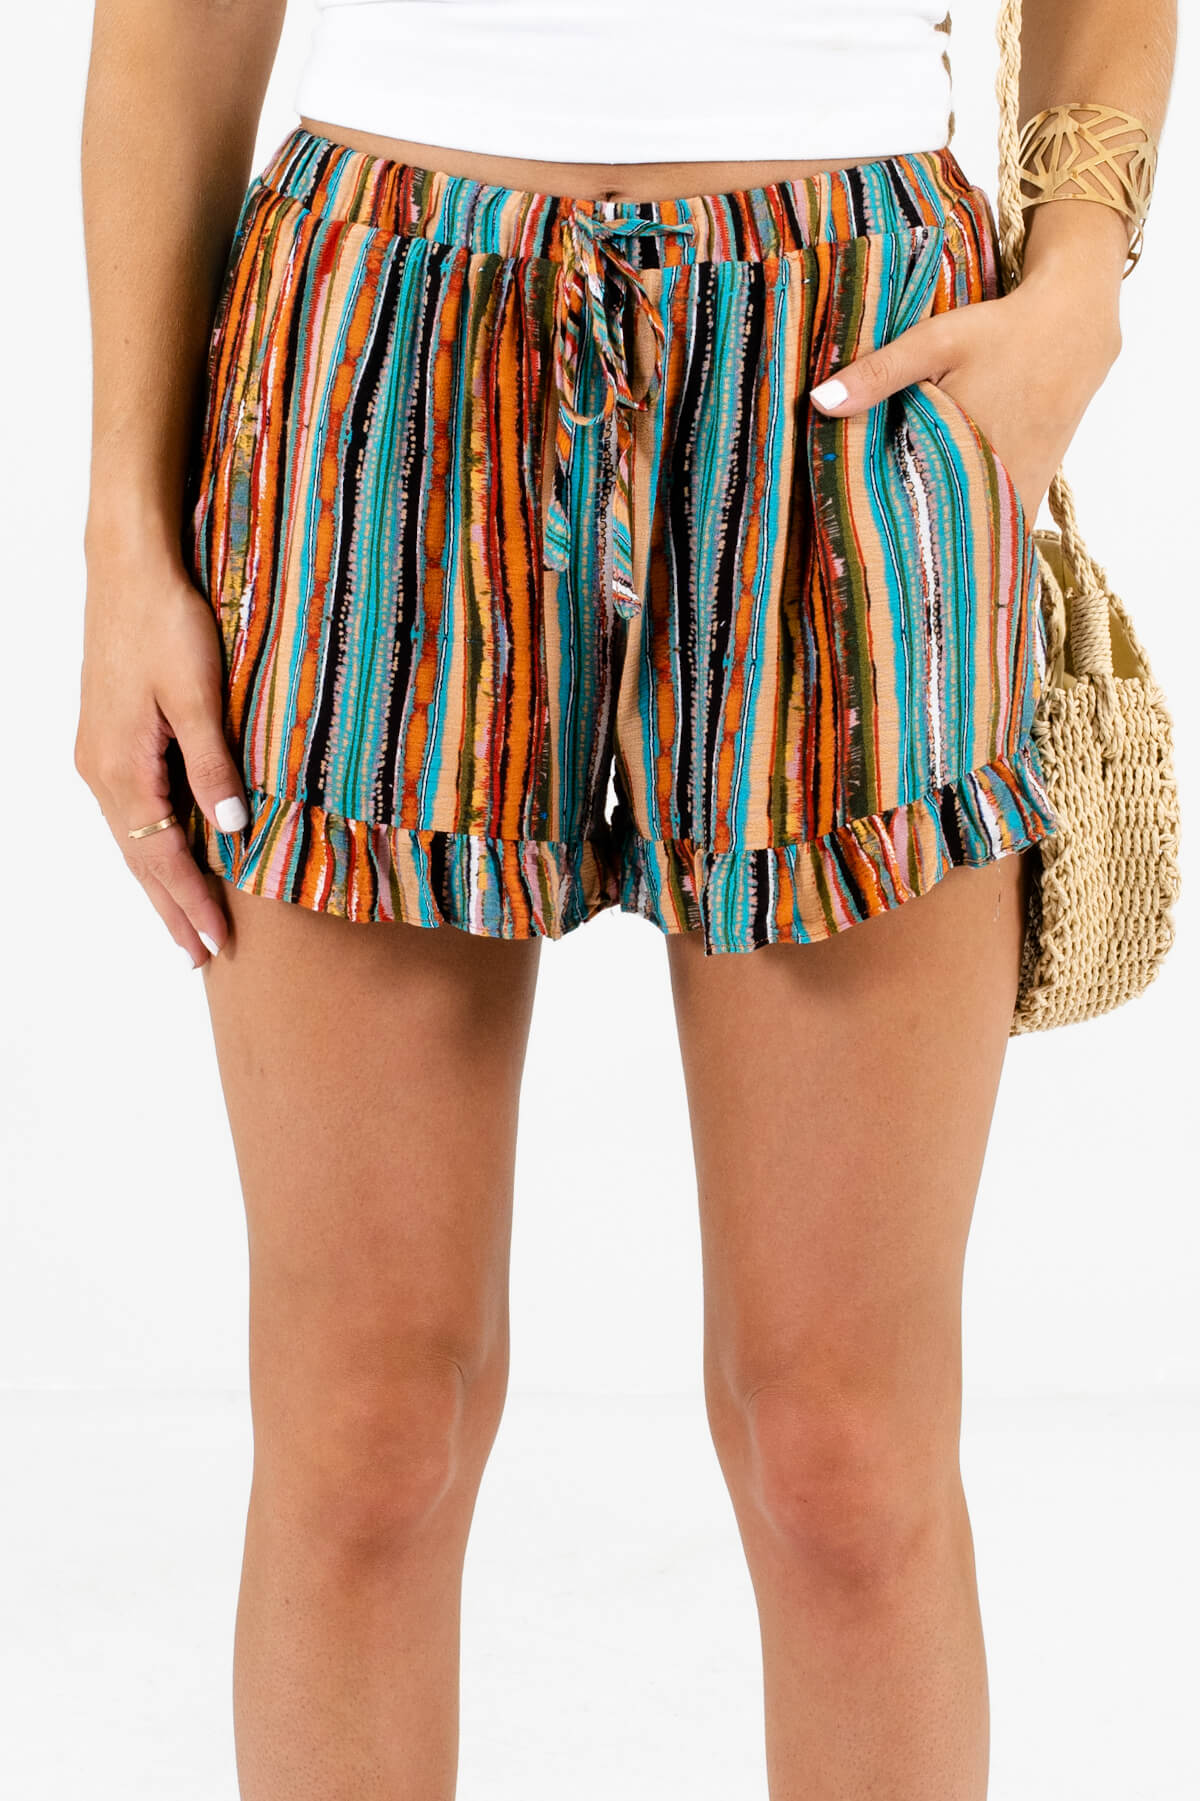 Teal Multi Stripe Patterned Boutique Shorts for Women